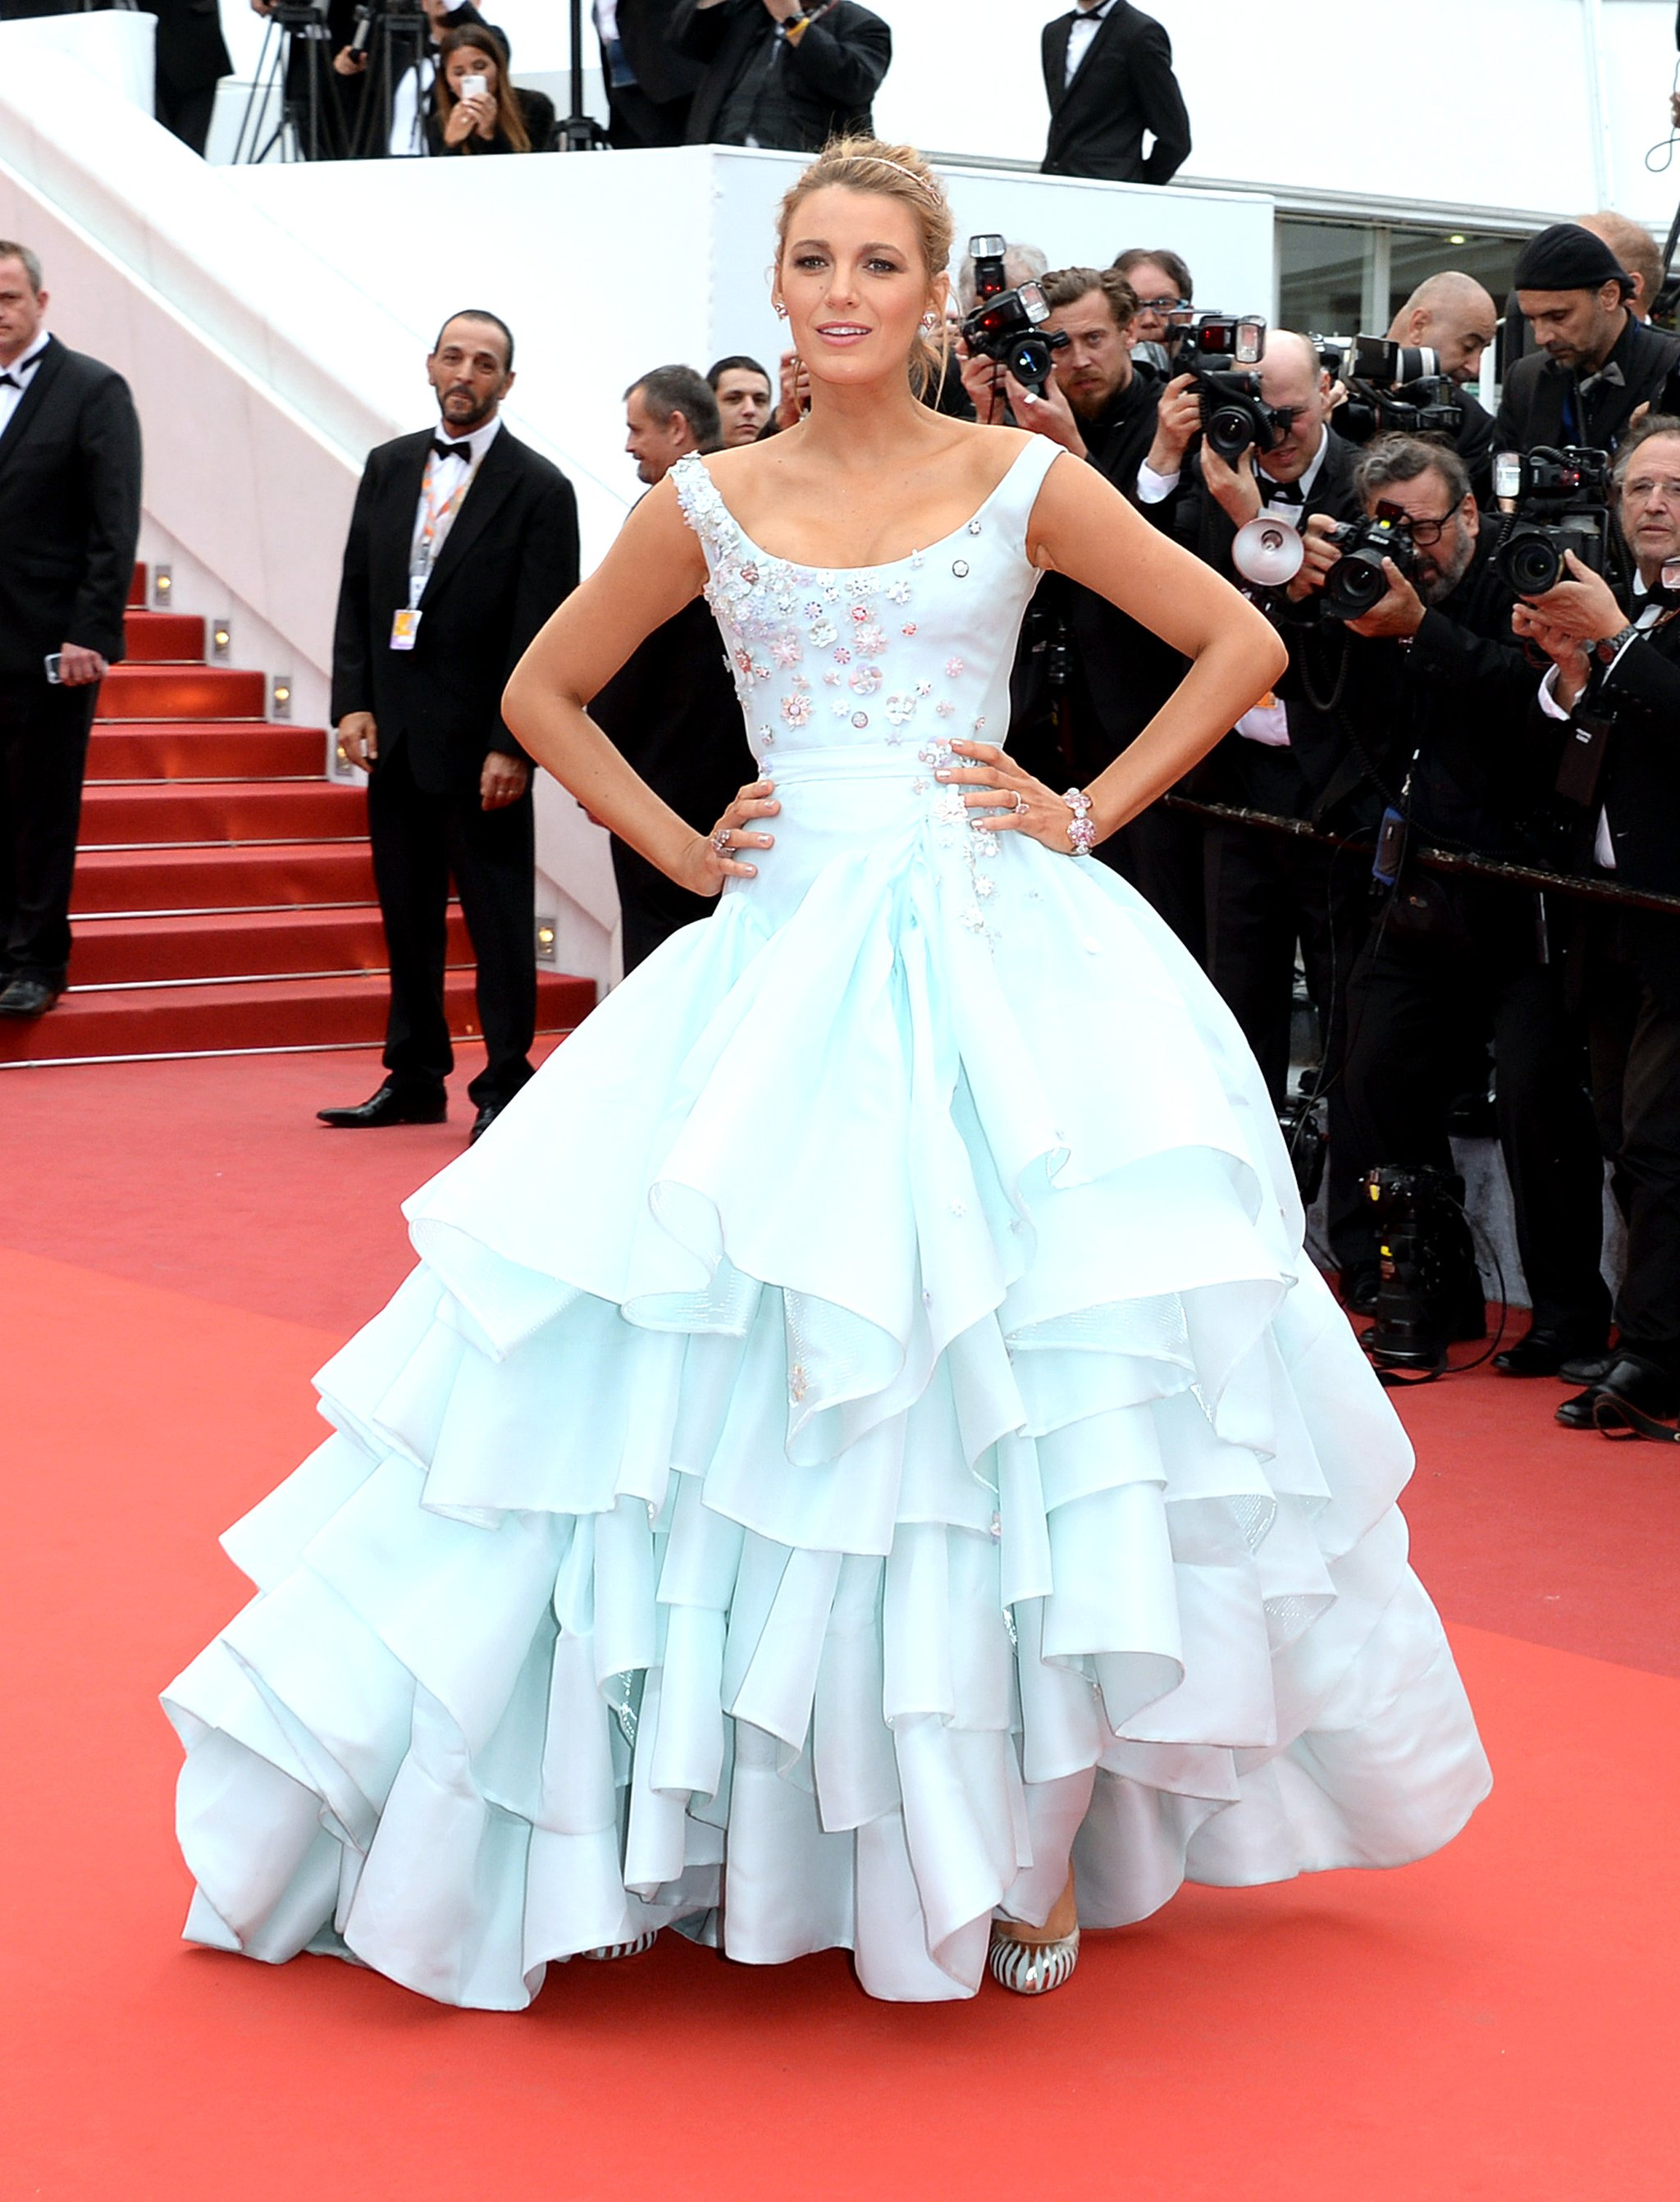 Blake Lively in Vivienne Westwood Couture